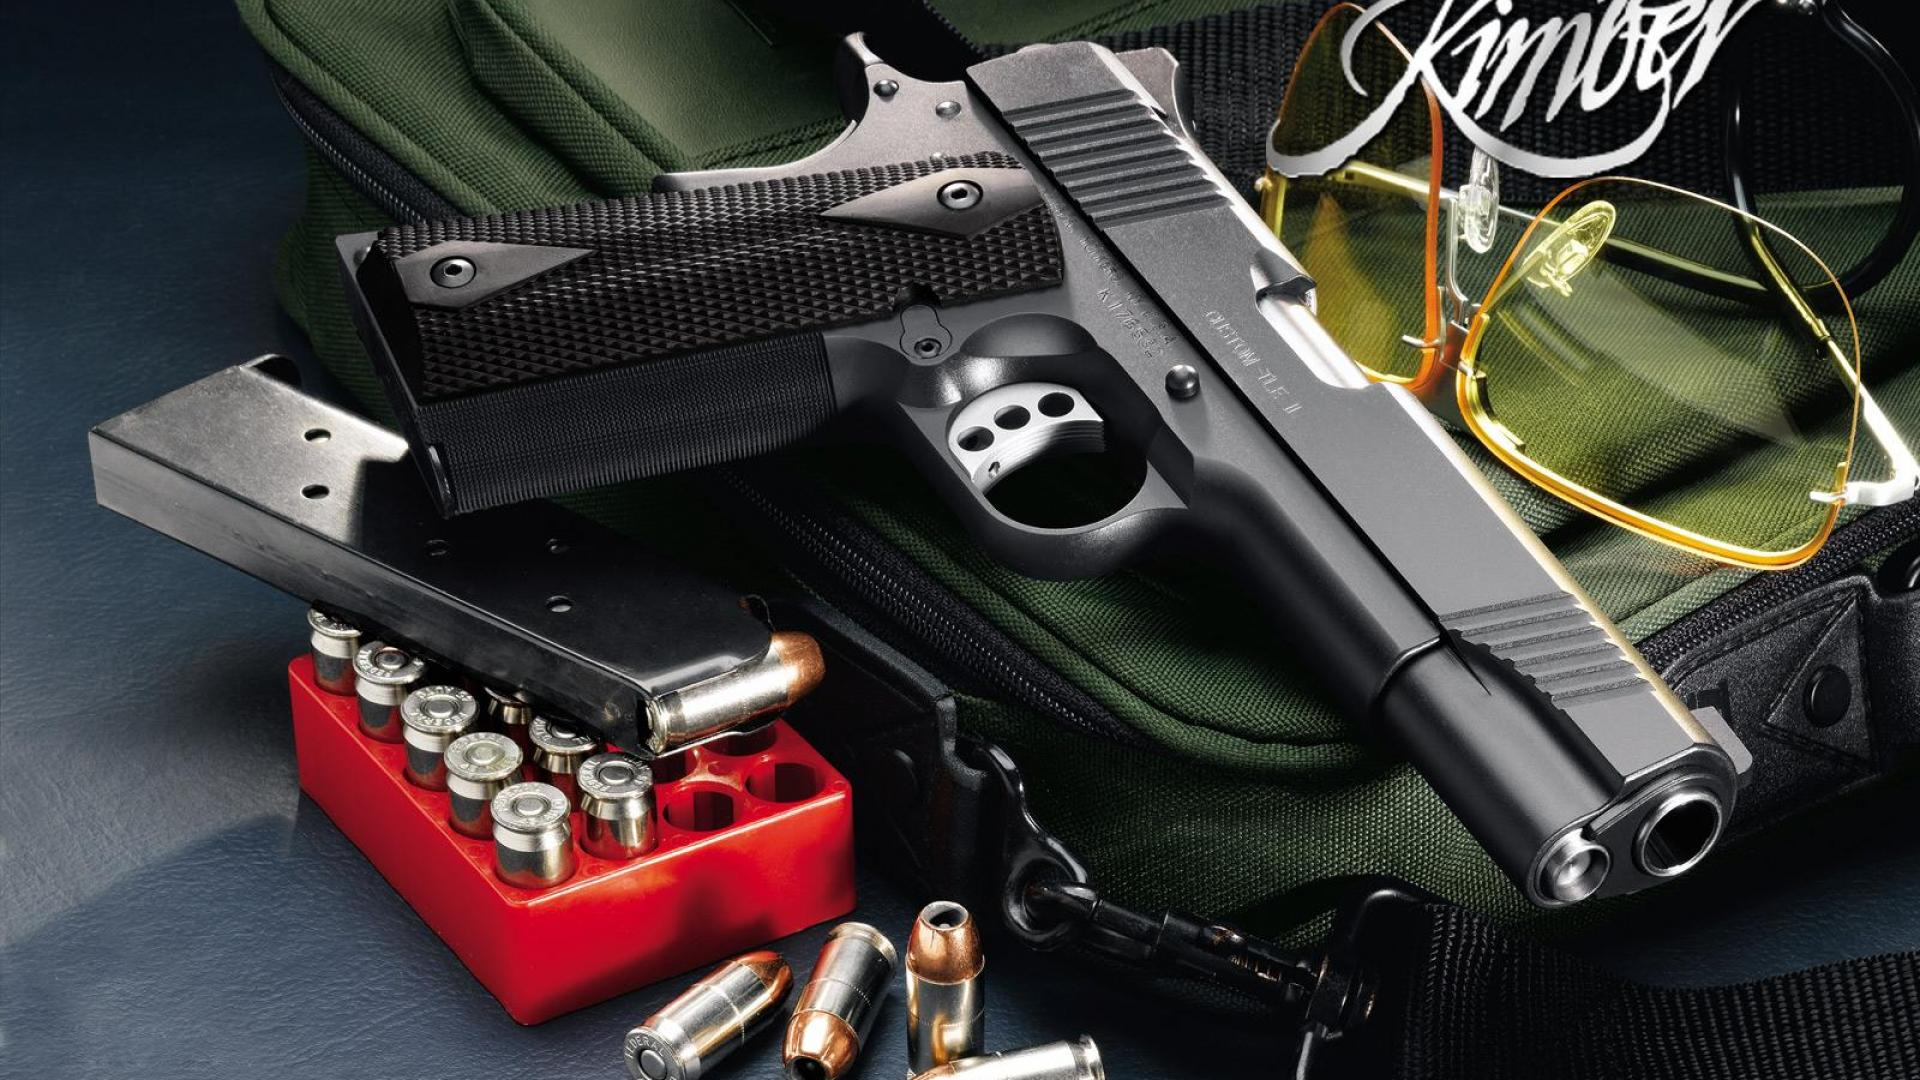 Amazing Kimber Pistol Pictures & Backgrounds